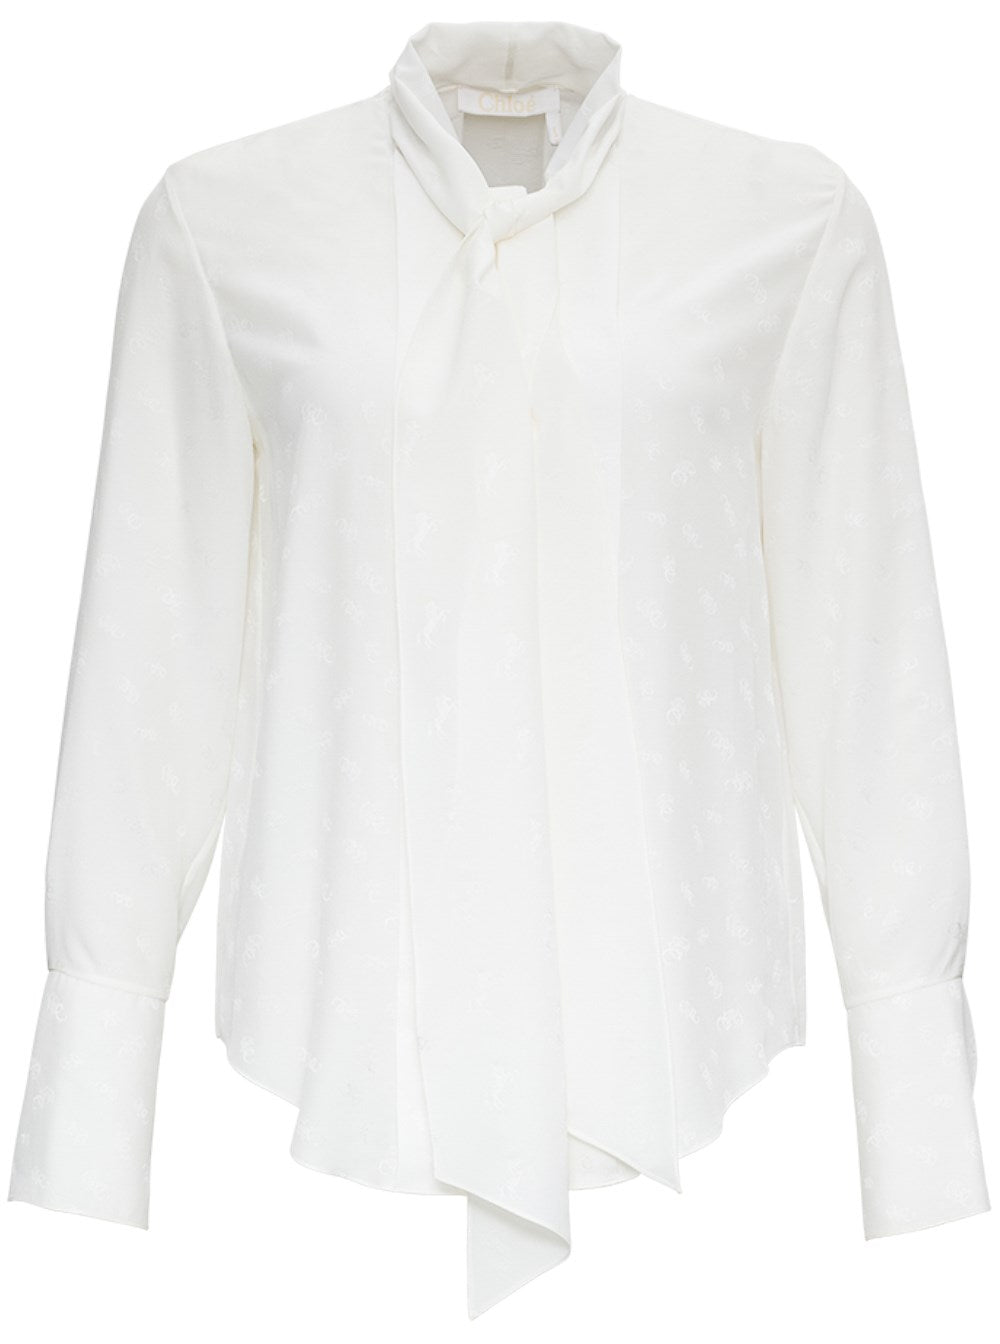 Chloé WHITE SILK BLOUSE WITH ALLOVER LOGO